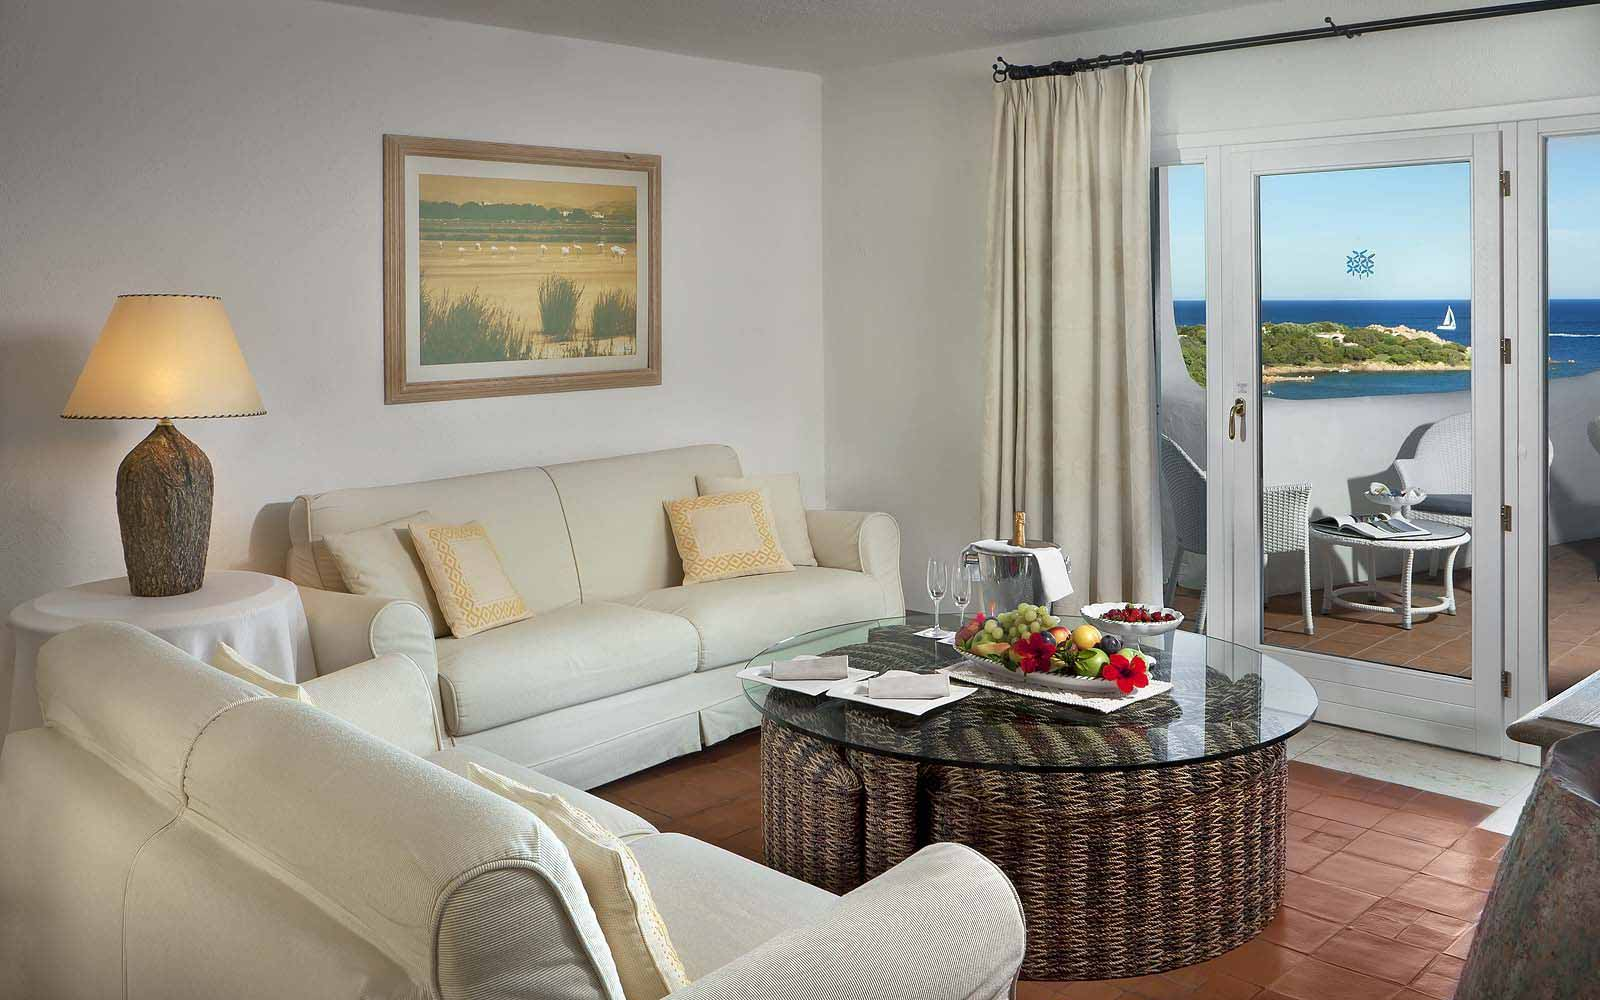 Presidential Suite's lounge at the Hotel Romazzino